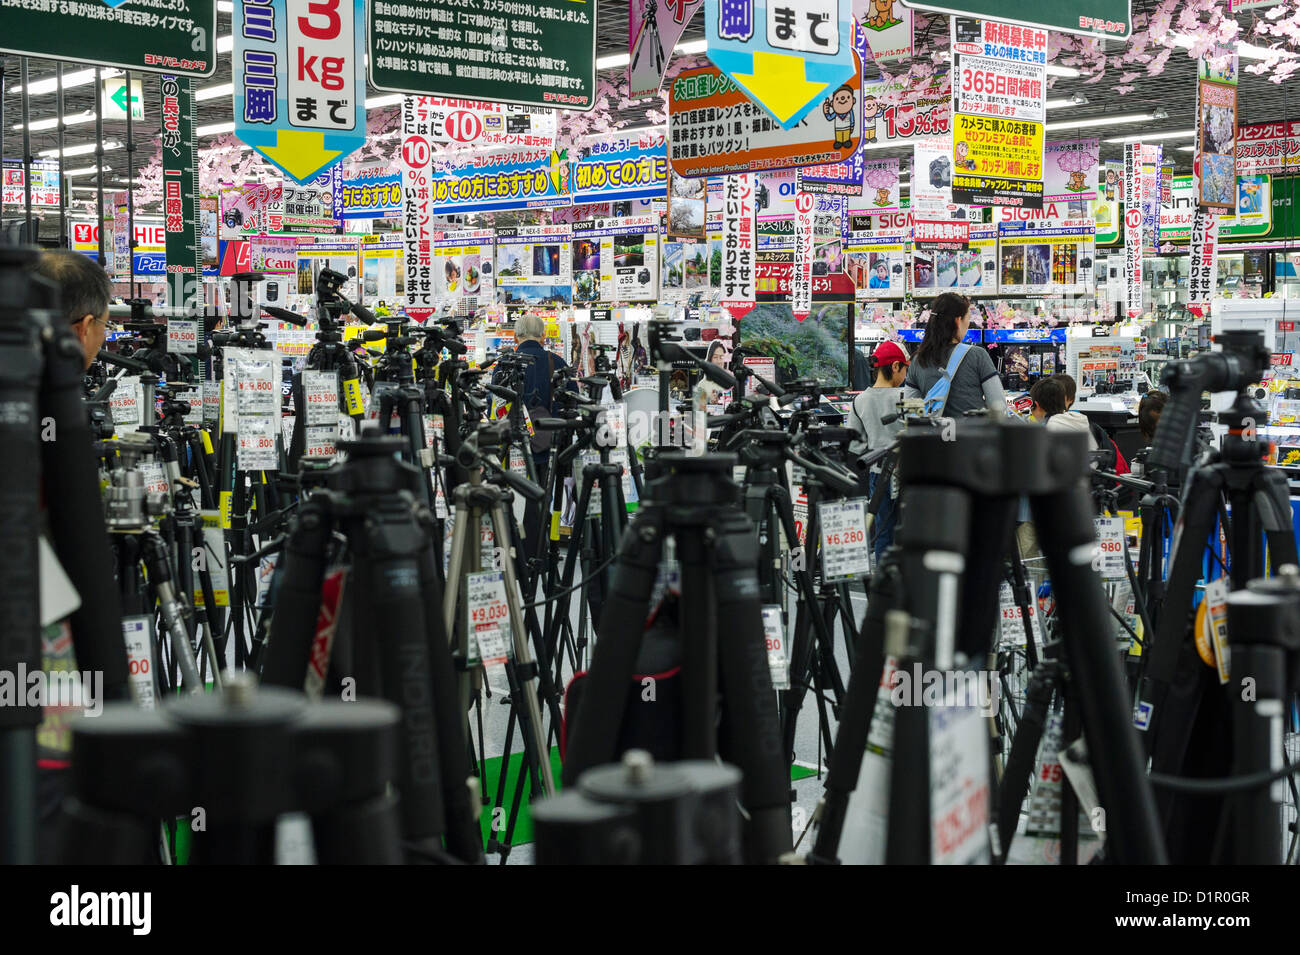 Tripods in Japanese camera store, Tokyo - Stock Image